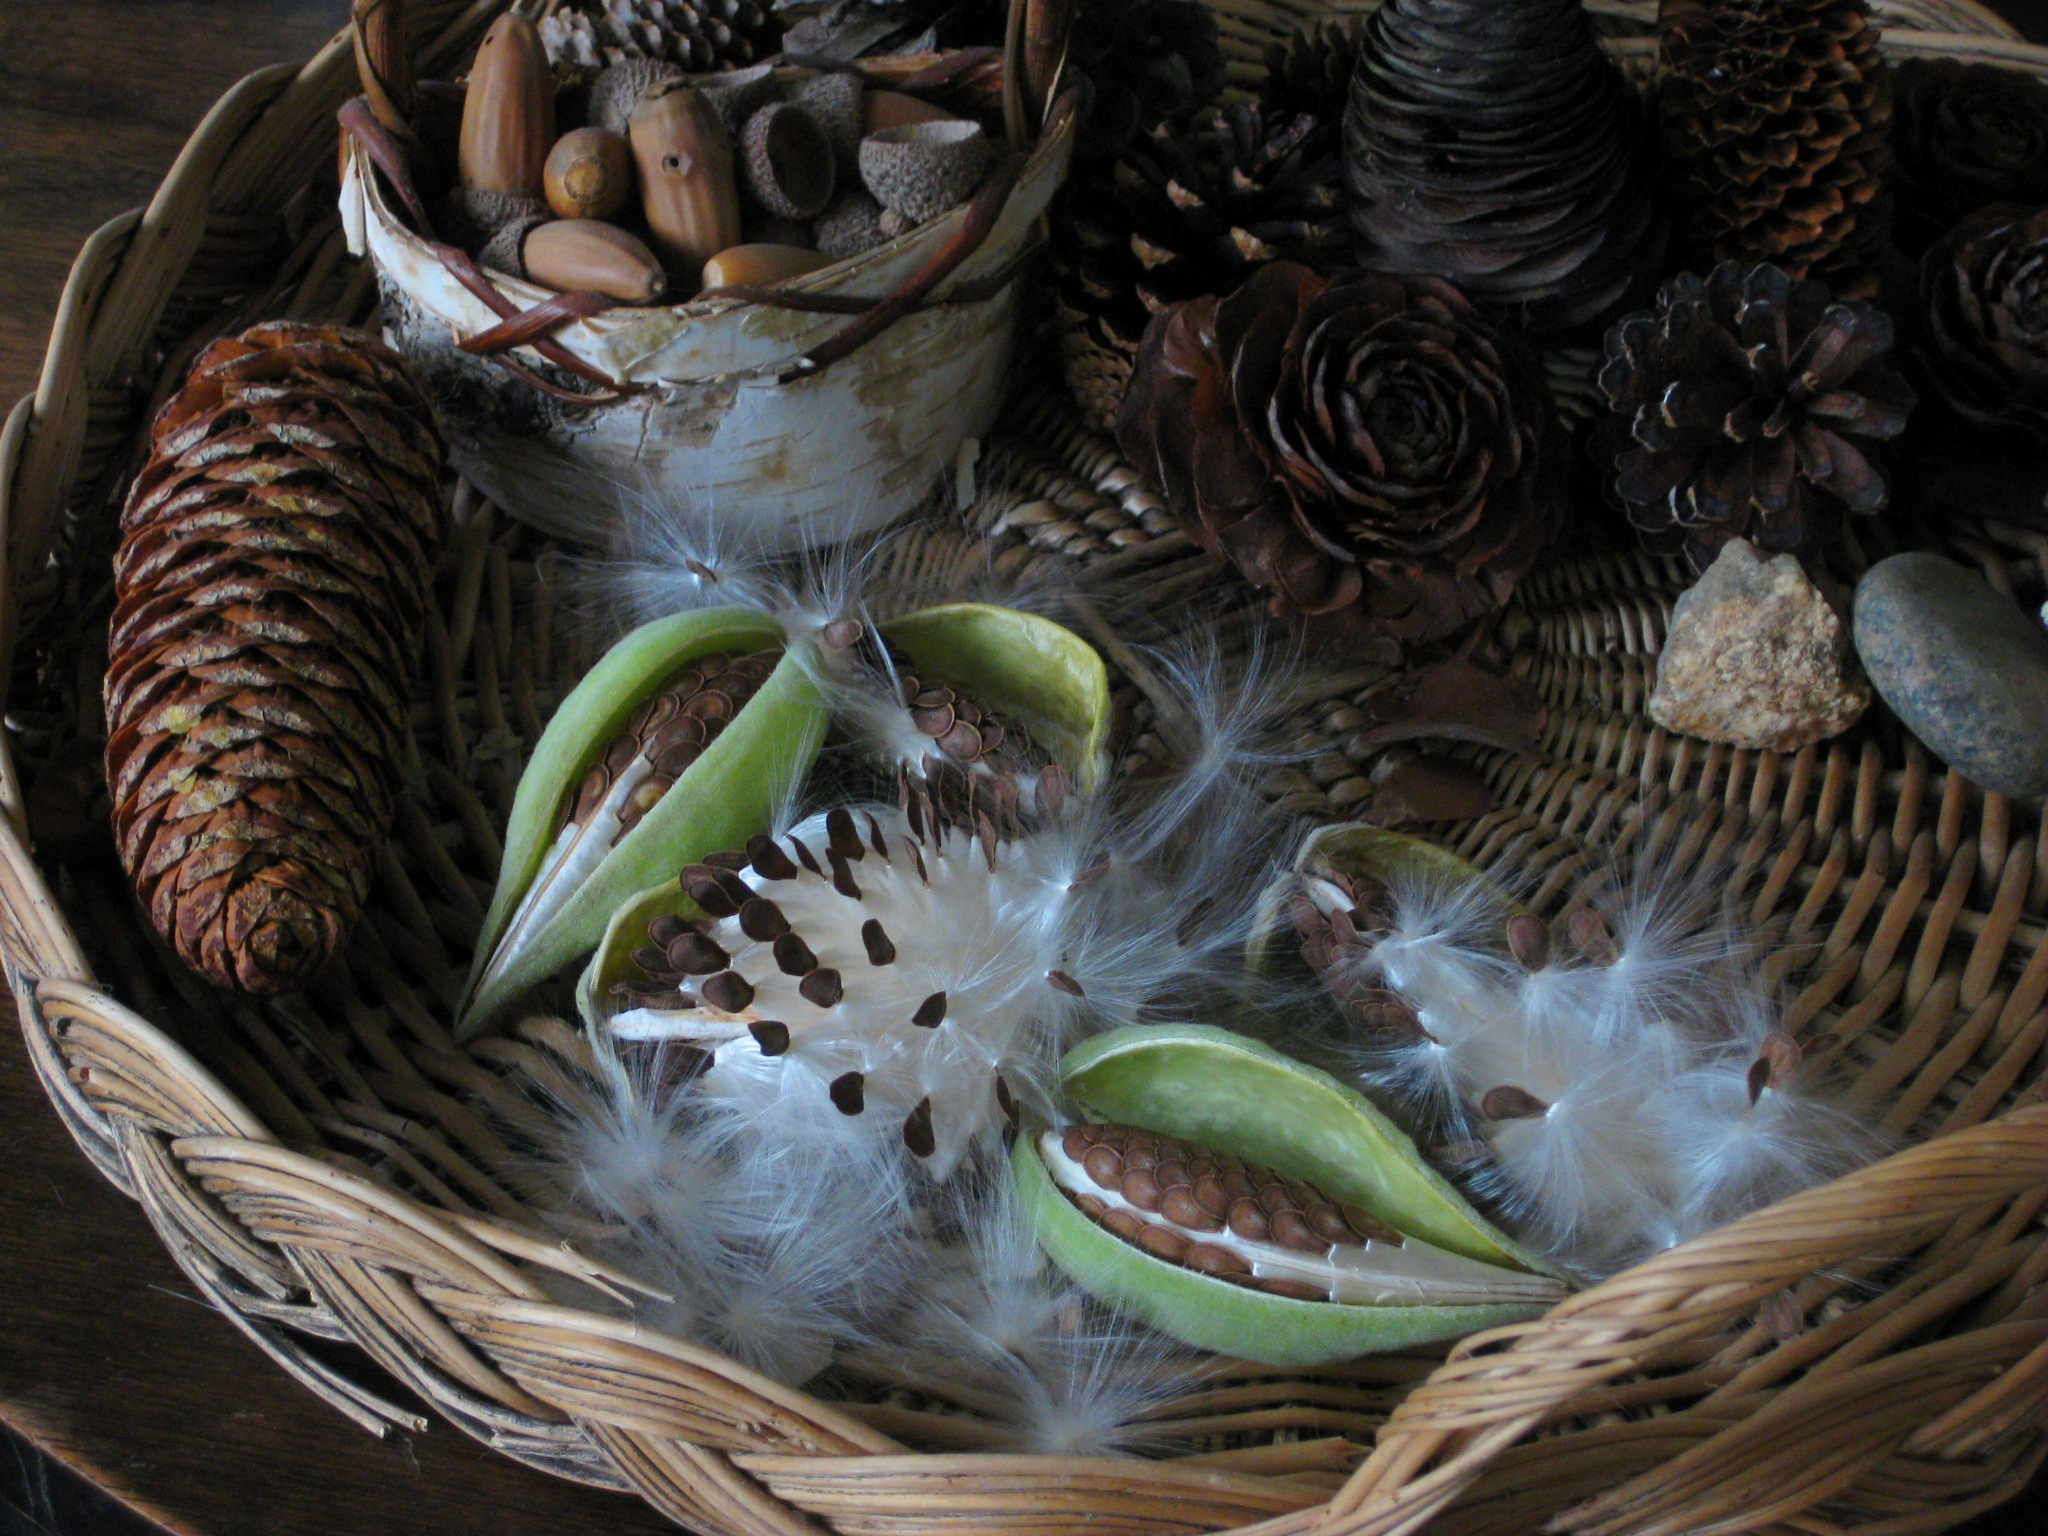 Milkweed seeds puff out in a pattern